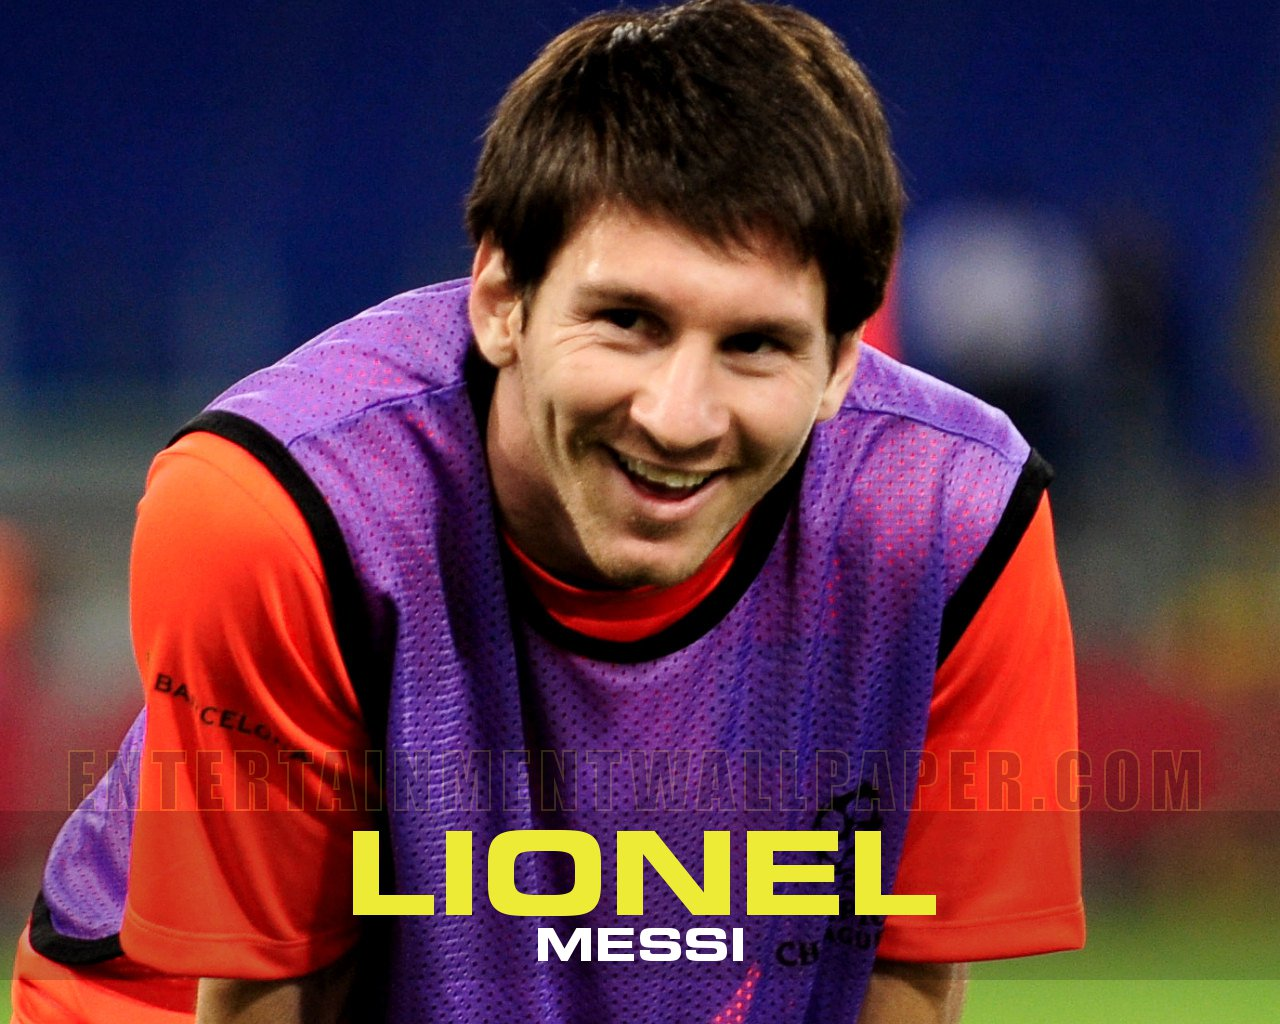 Lionel Messi, Not Cristiano Ronaldo, Is Best Soccer Player 'In The World'